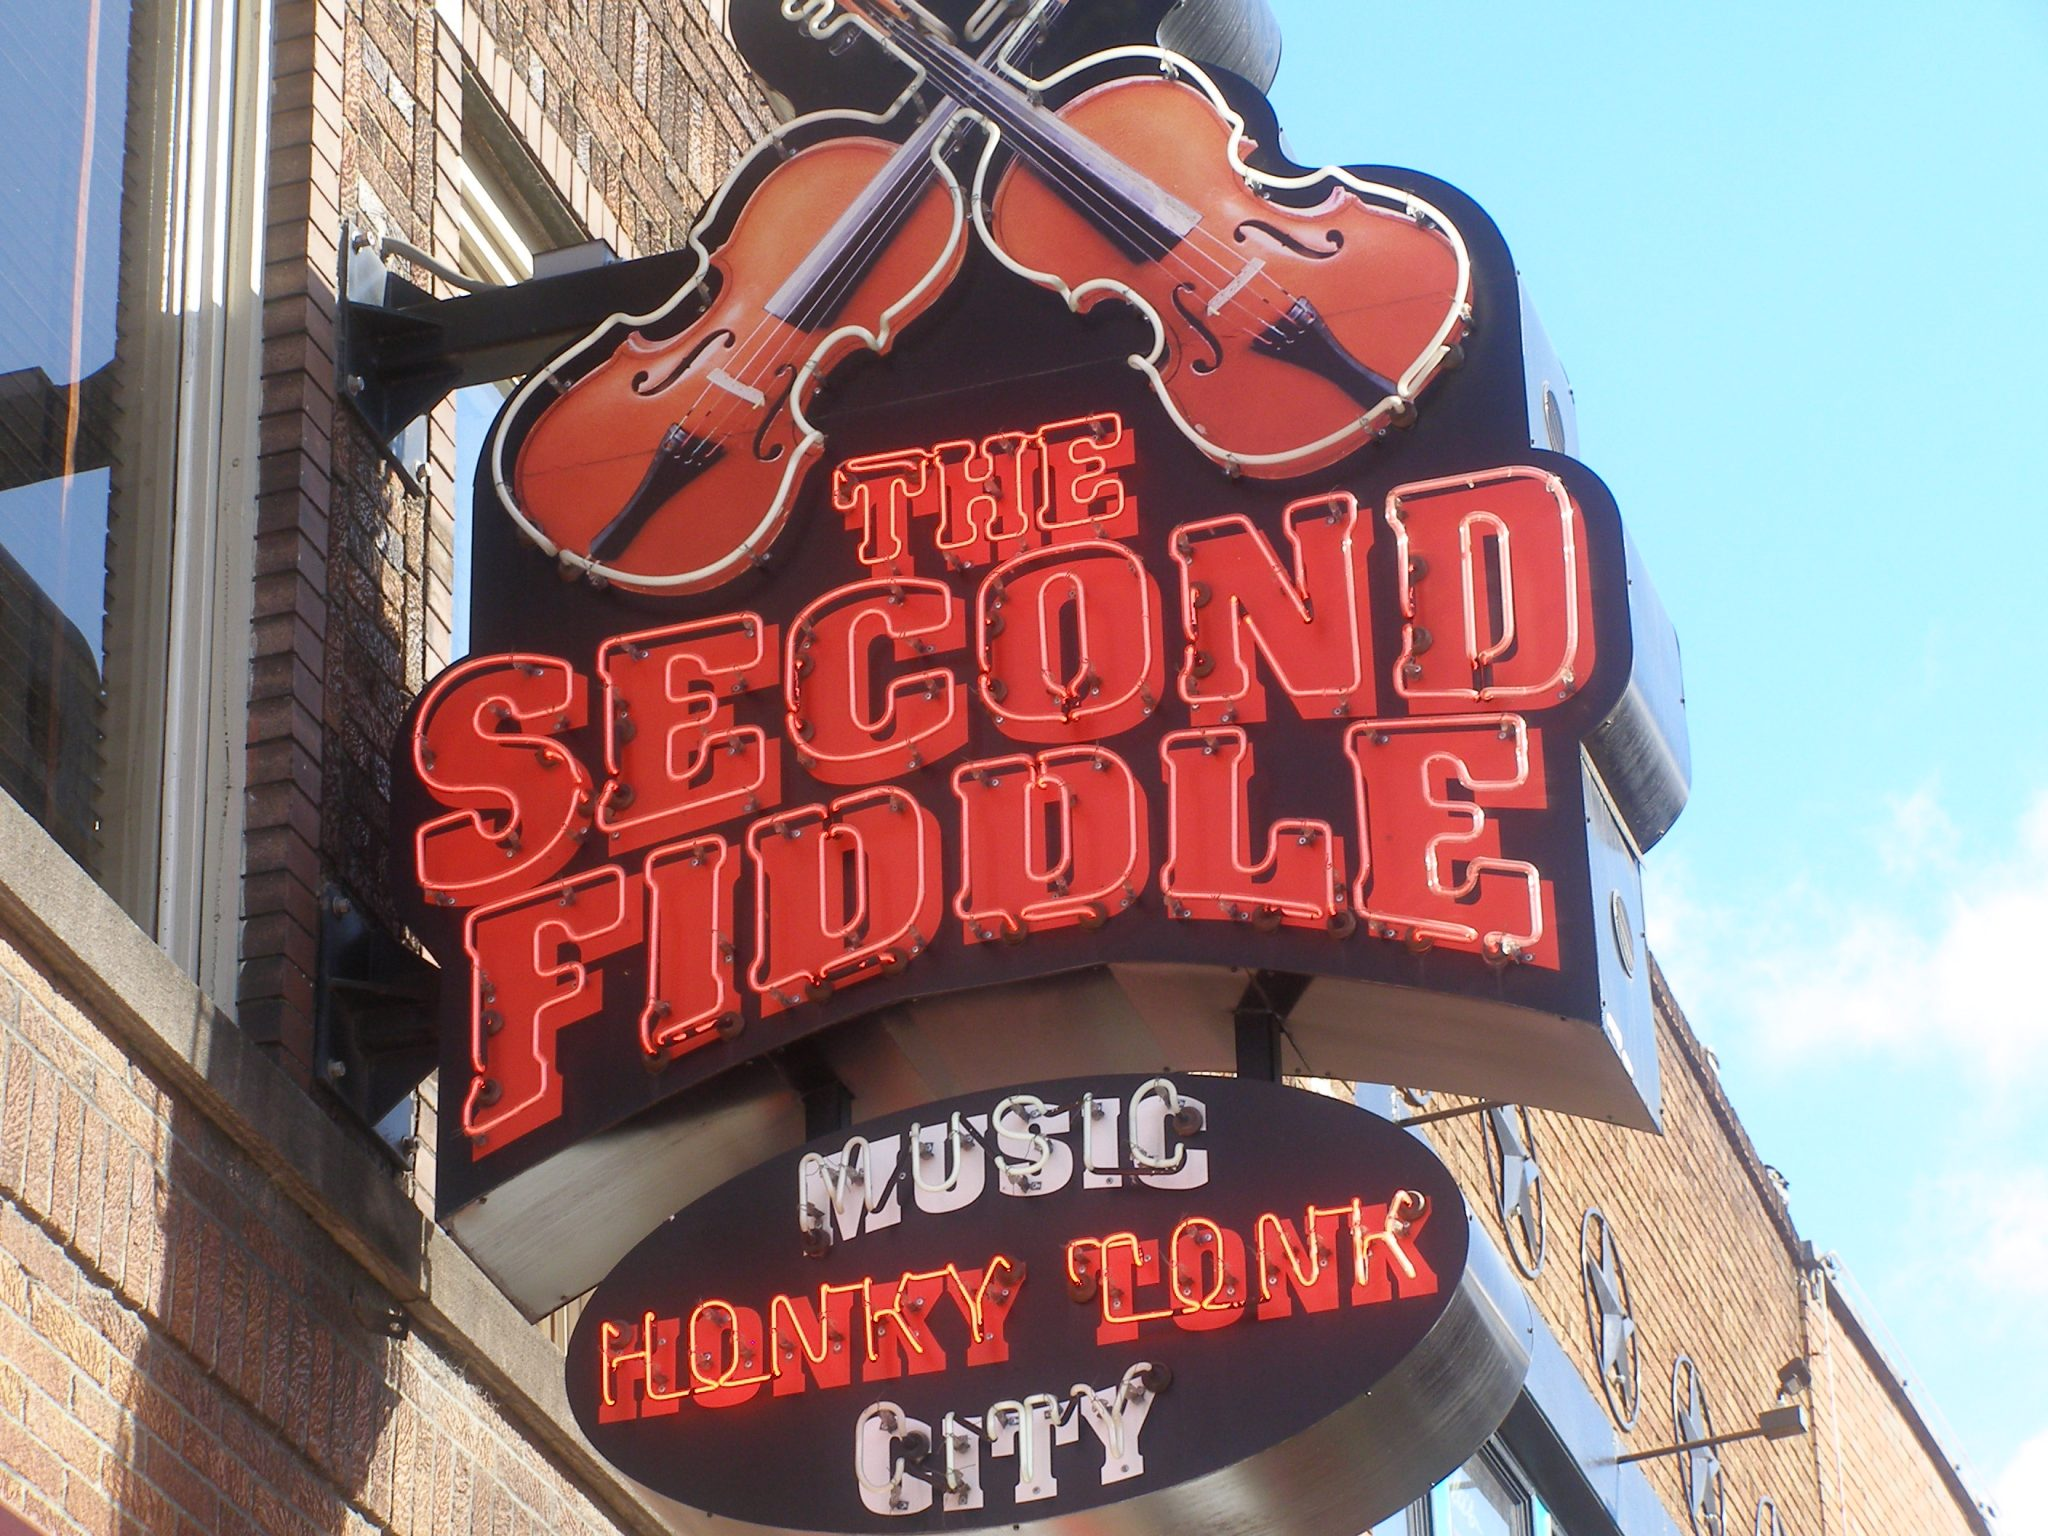 The Second Fiddle sign on Honky Tonk Highway in Nashville